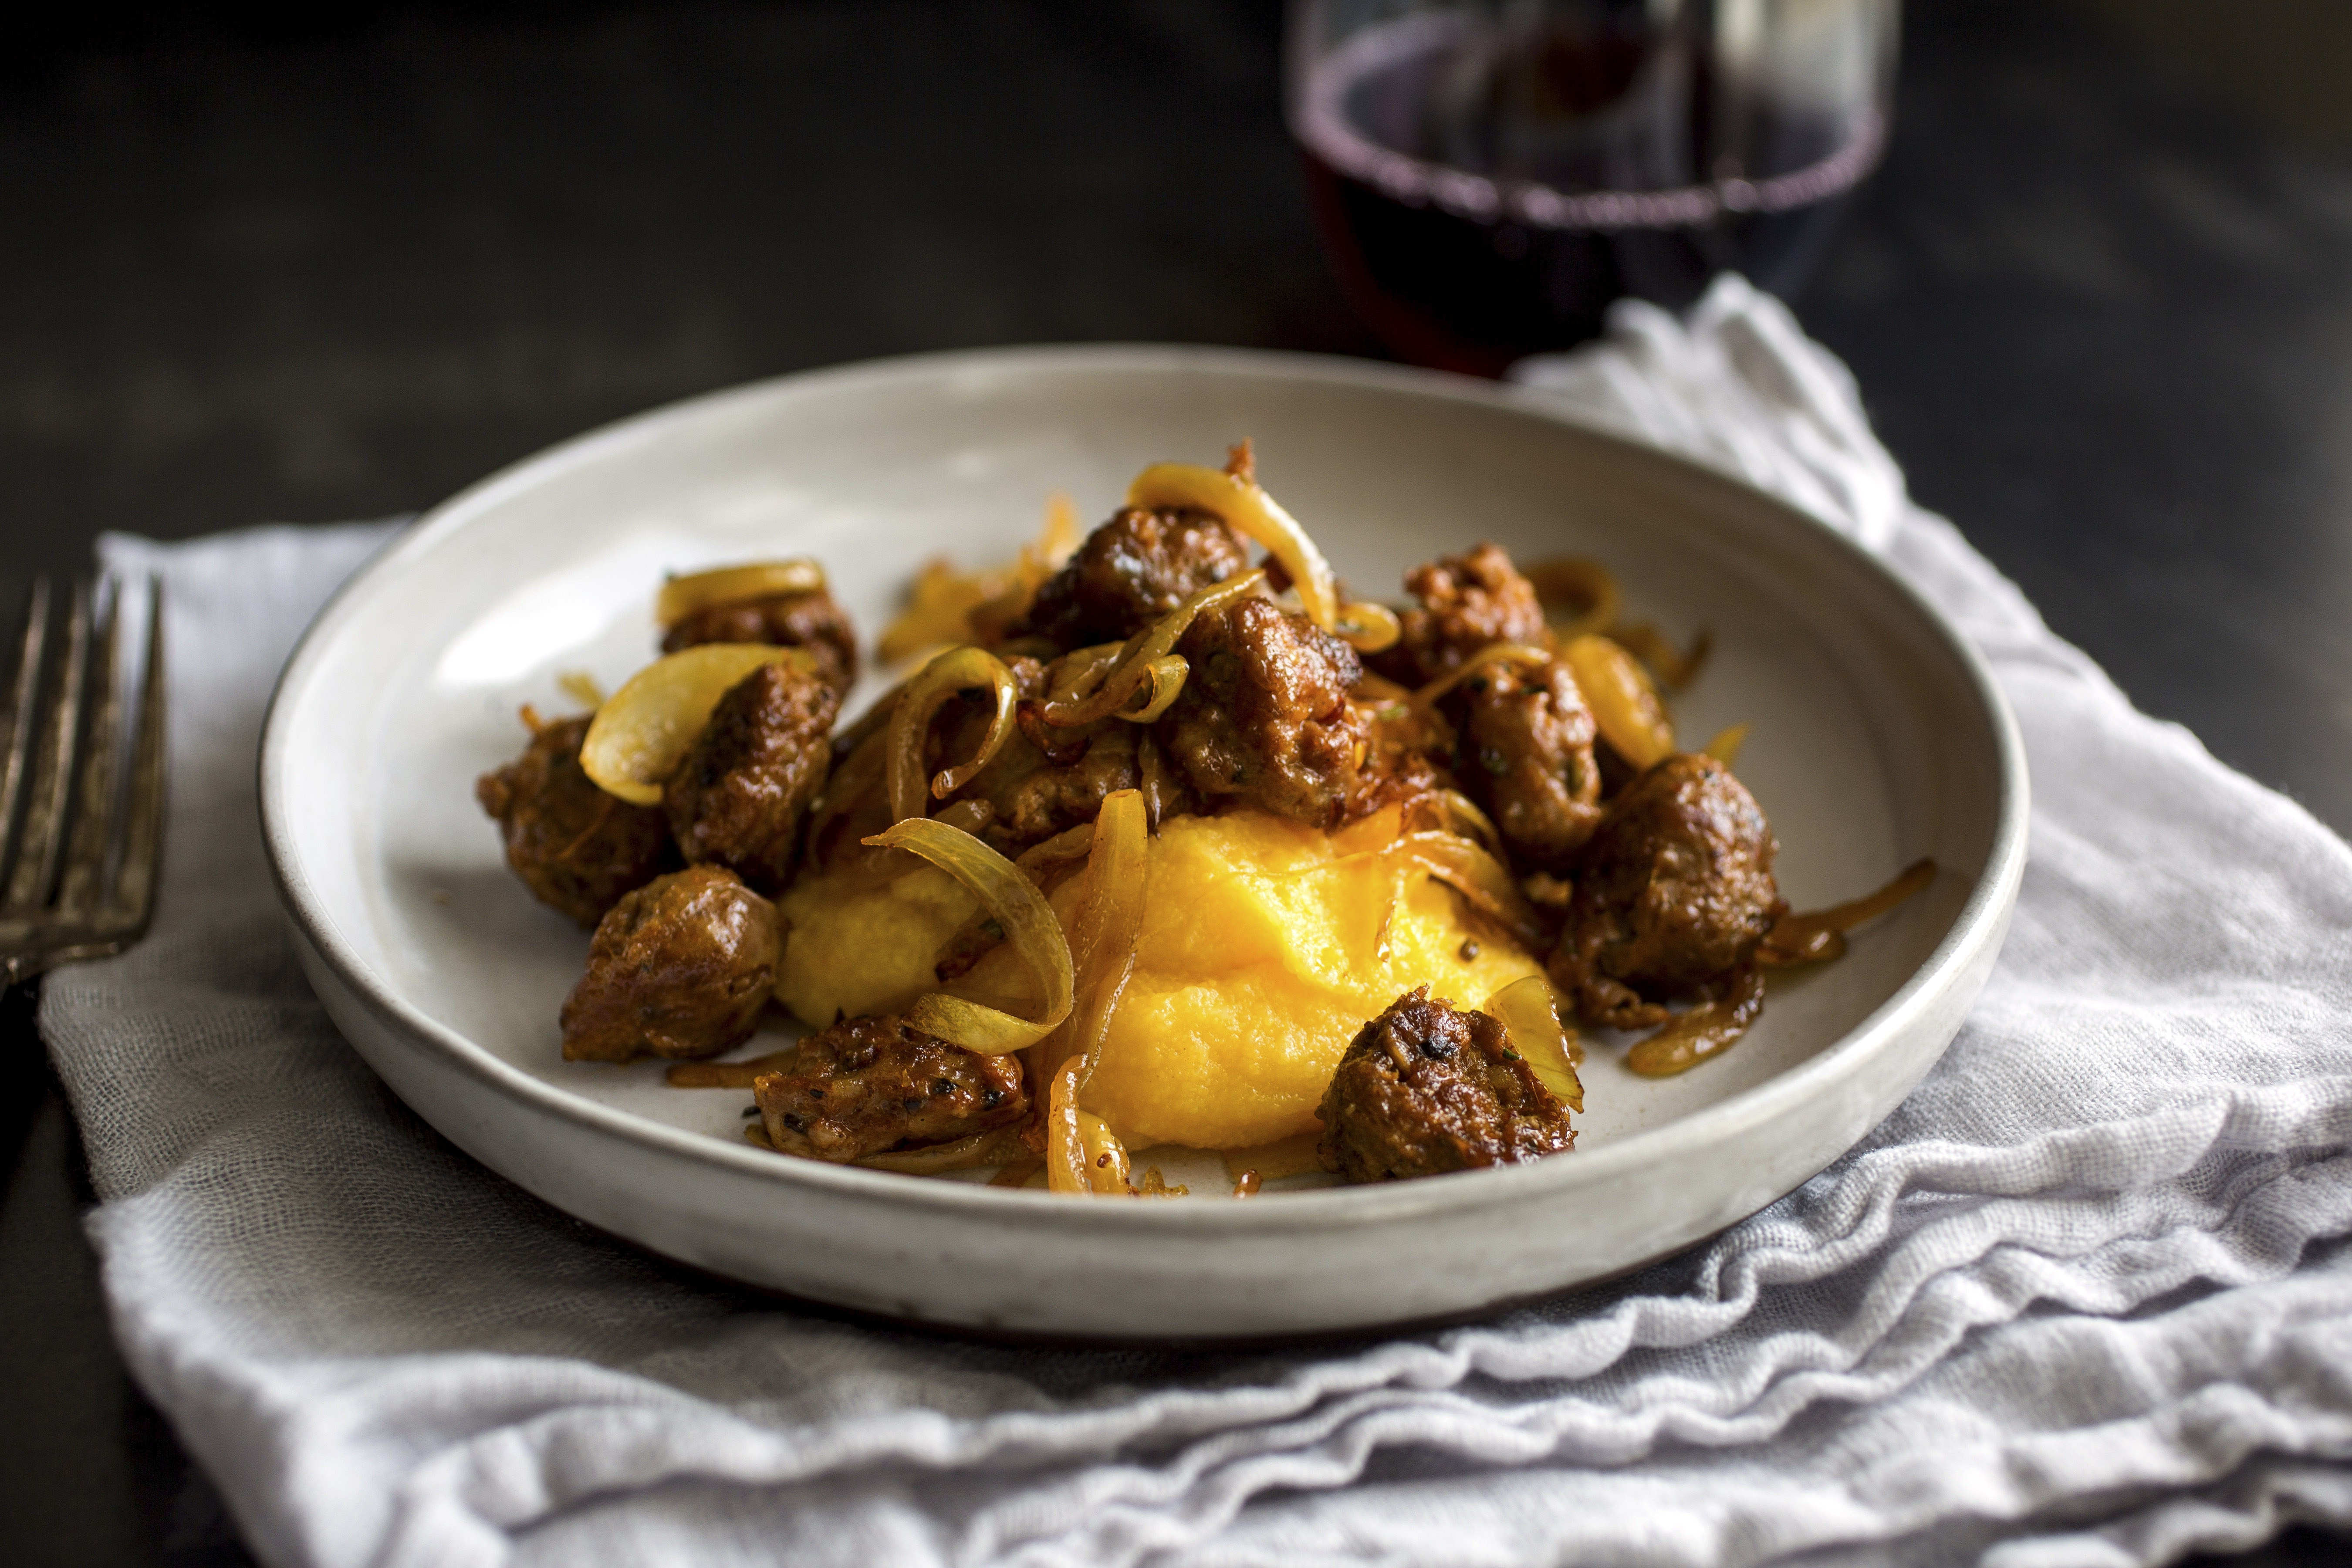 No longer a pricey novelty for gourmets, polenta is widely available and makes a fine base for an improvised after-work meal like this butternut squash polenta with sausage and onion.